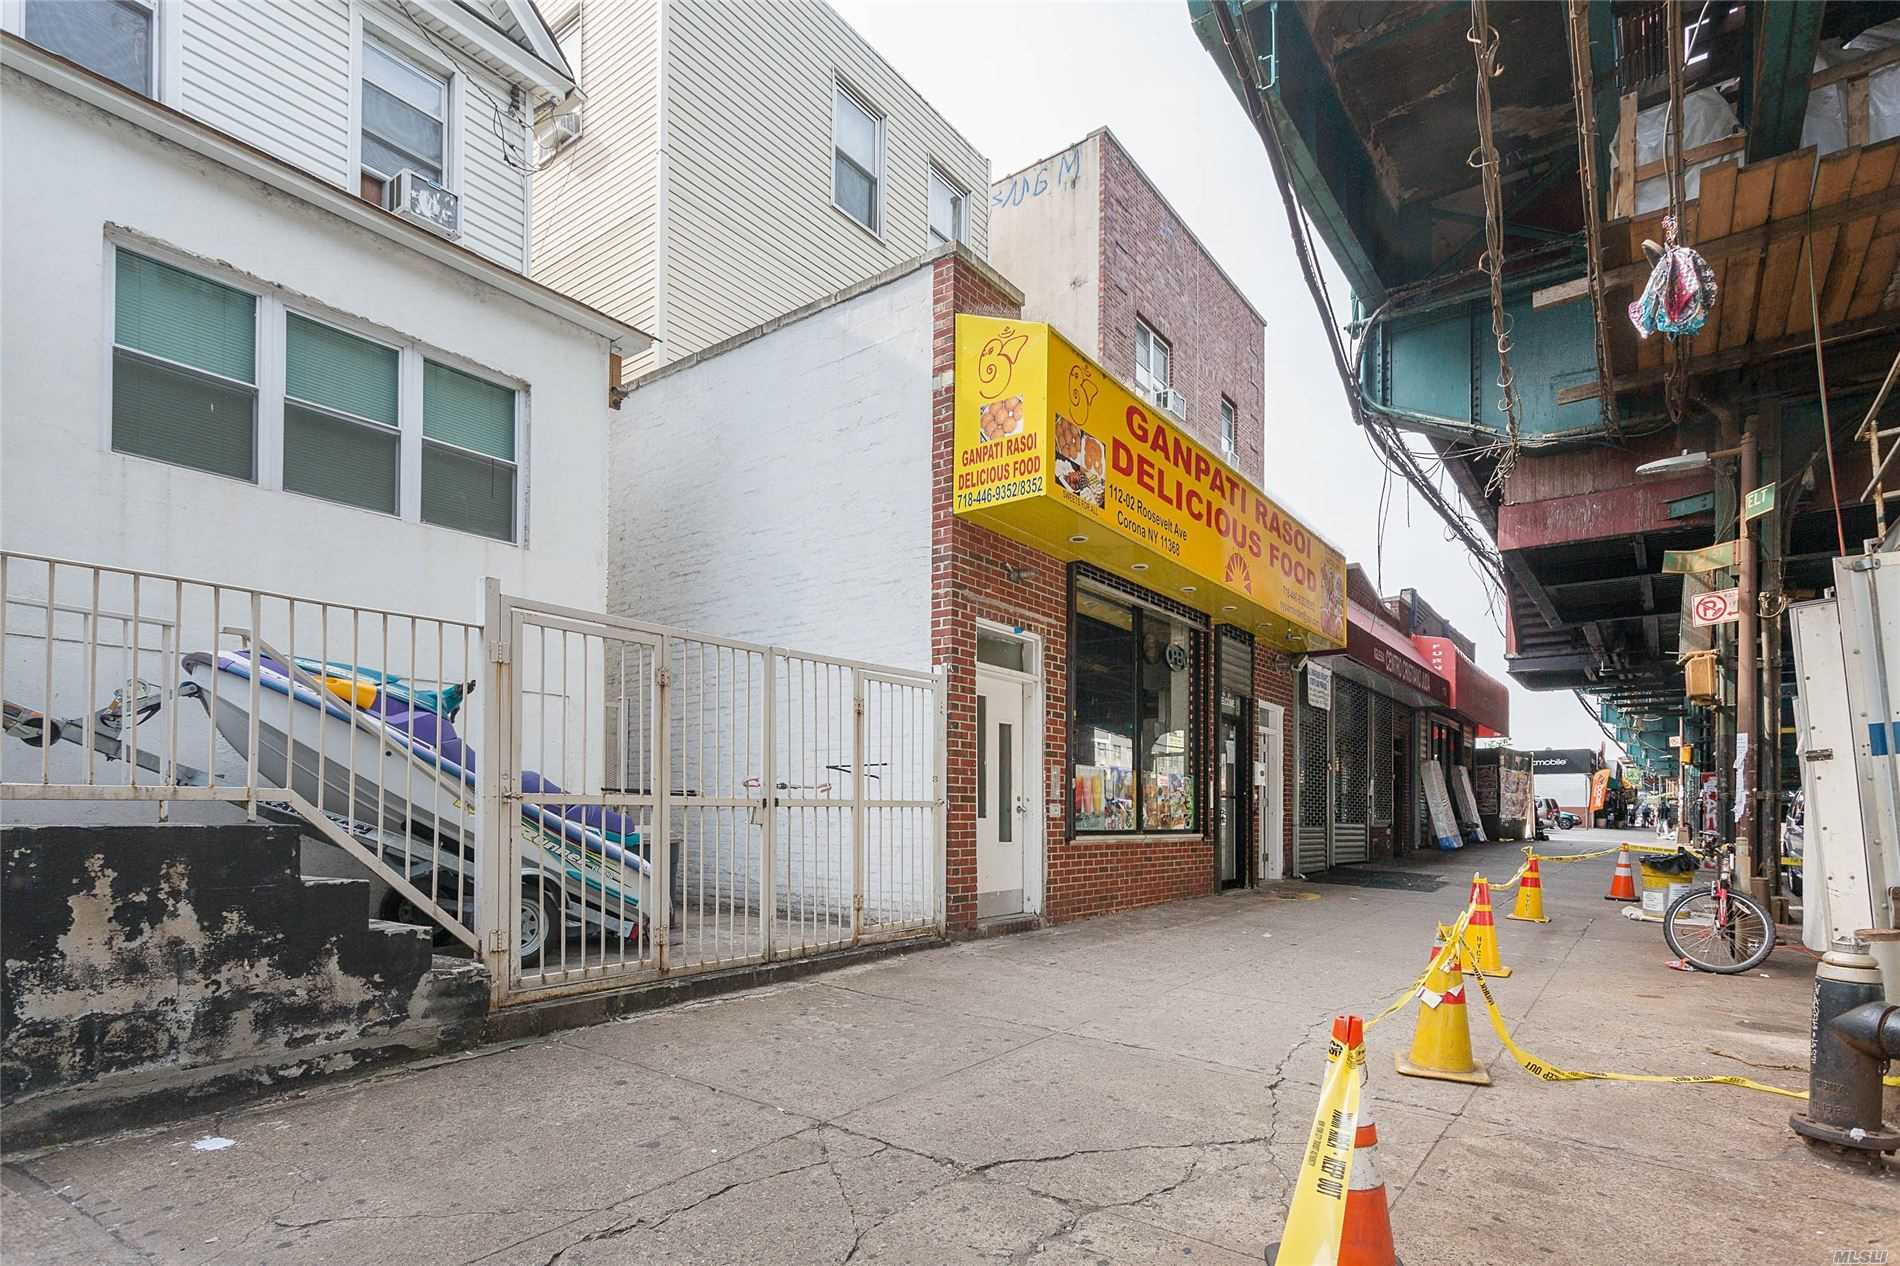 112-02 Roosevelt Avenue 112-02, Flushing, New York 0 Bedroom as one of Homes & Land Real Estate